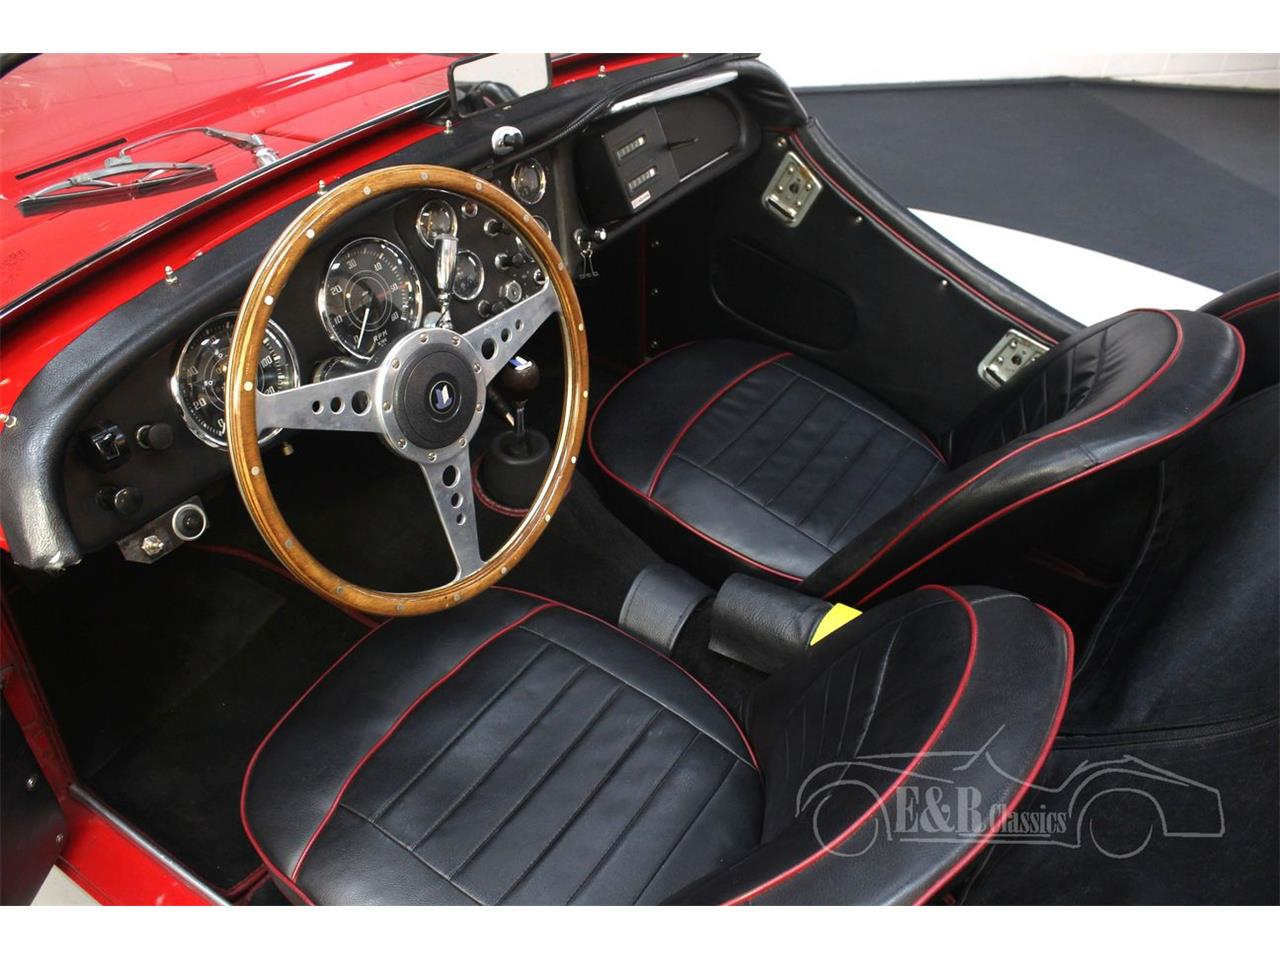 Large Picture of Classic '60 Triumph TR3A - $41,400.00 Offered by E & R Classics - Q31H